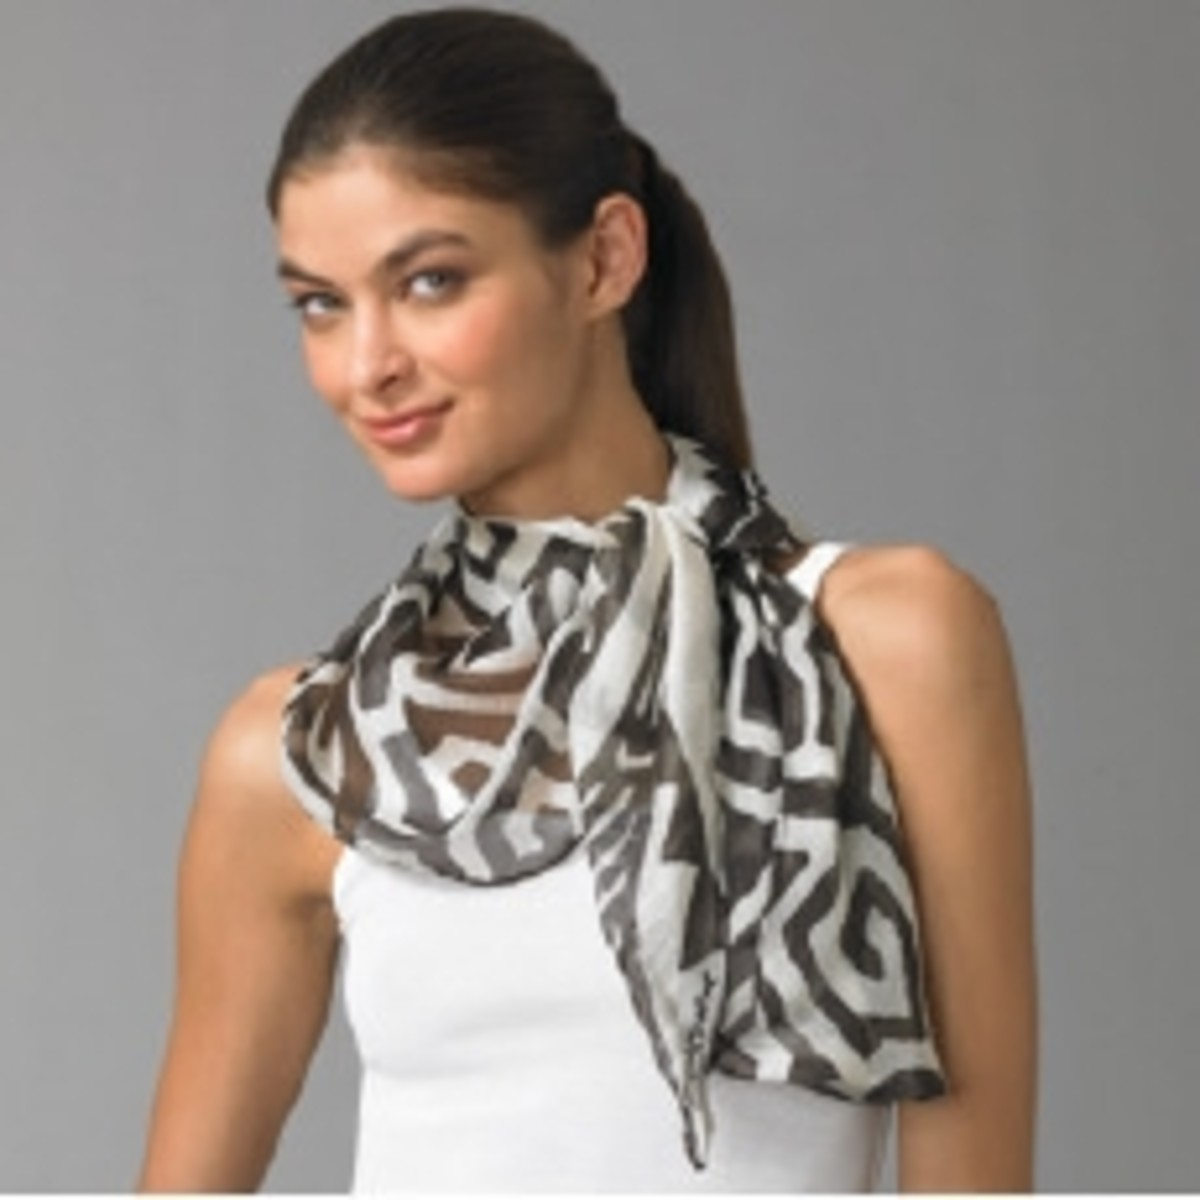 The Scarf, stylish accessory ties up your fashion statement